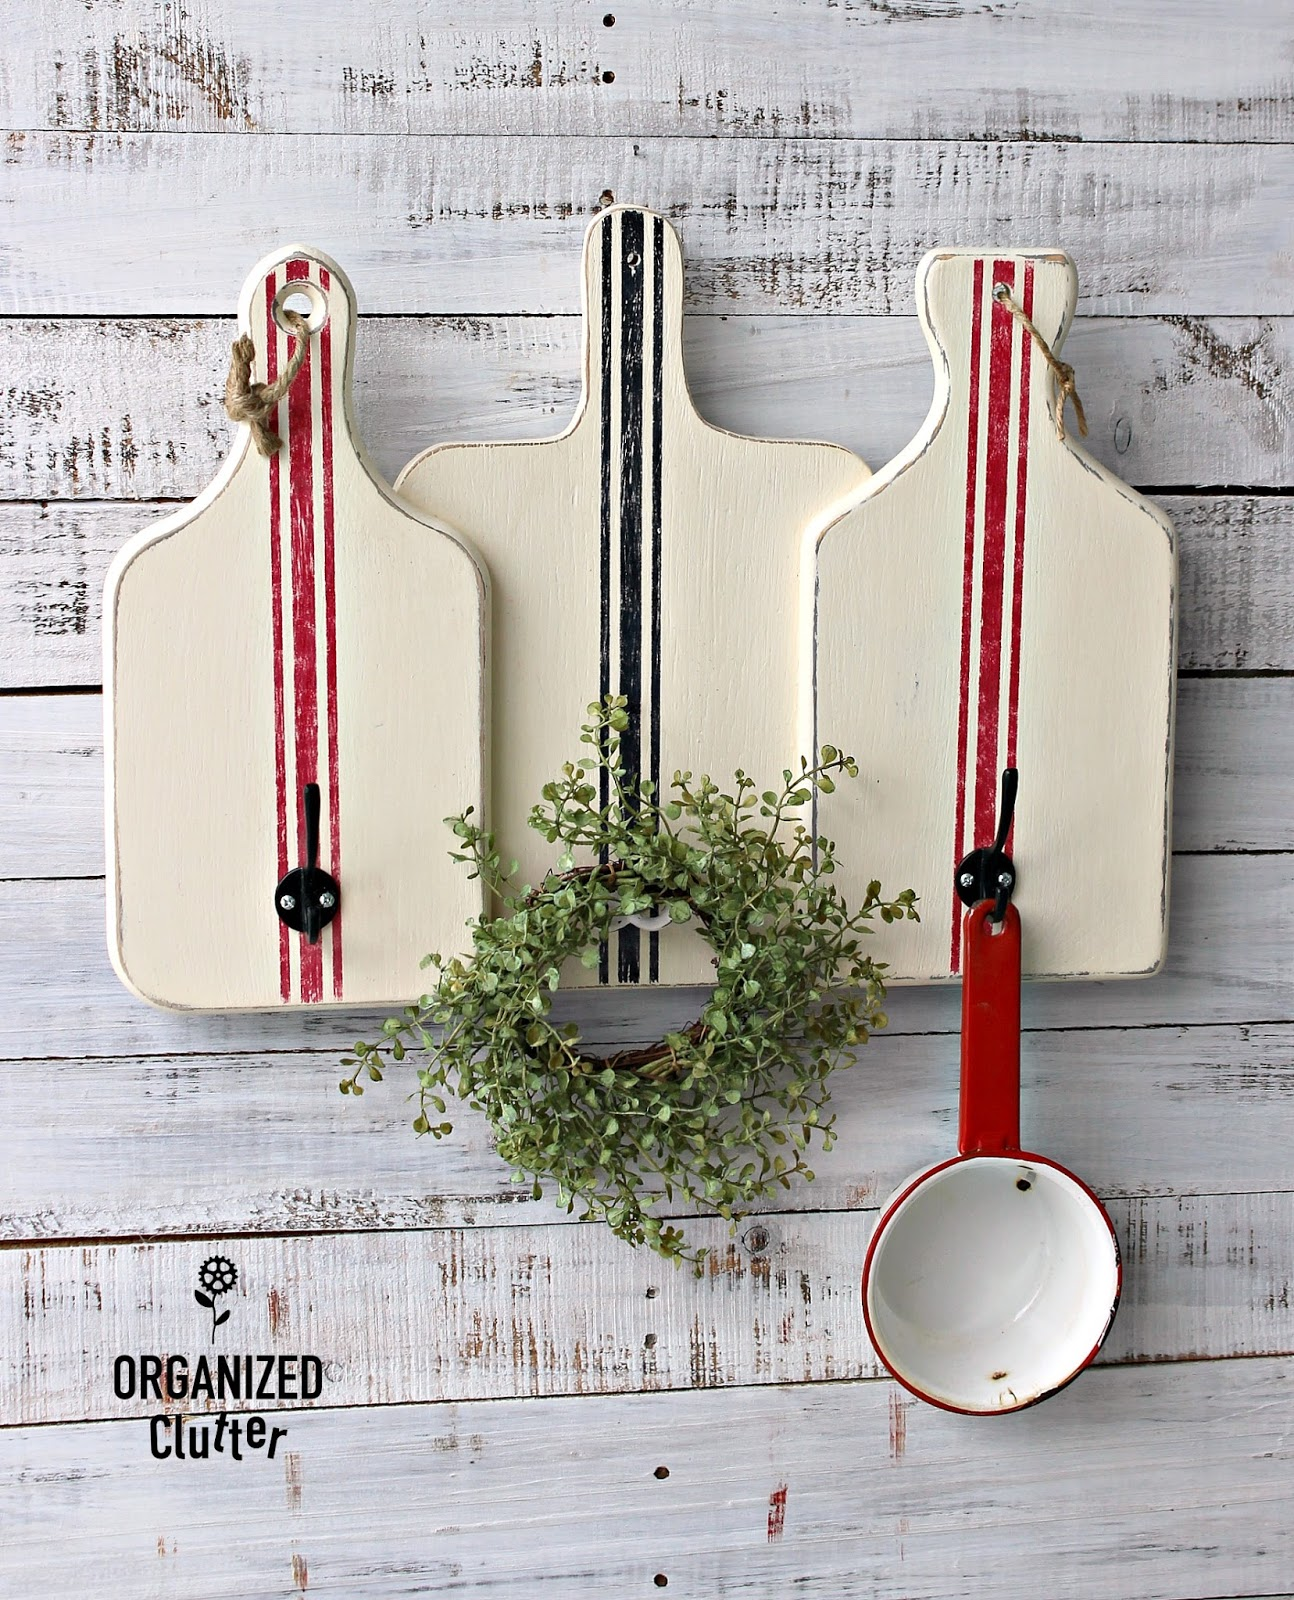 Farmhouse vintage grain sack cutting board kitchen hooks by Organized Clutter, featured on Funky Junk Interiors